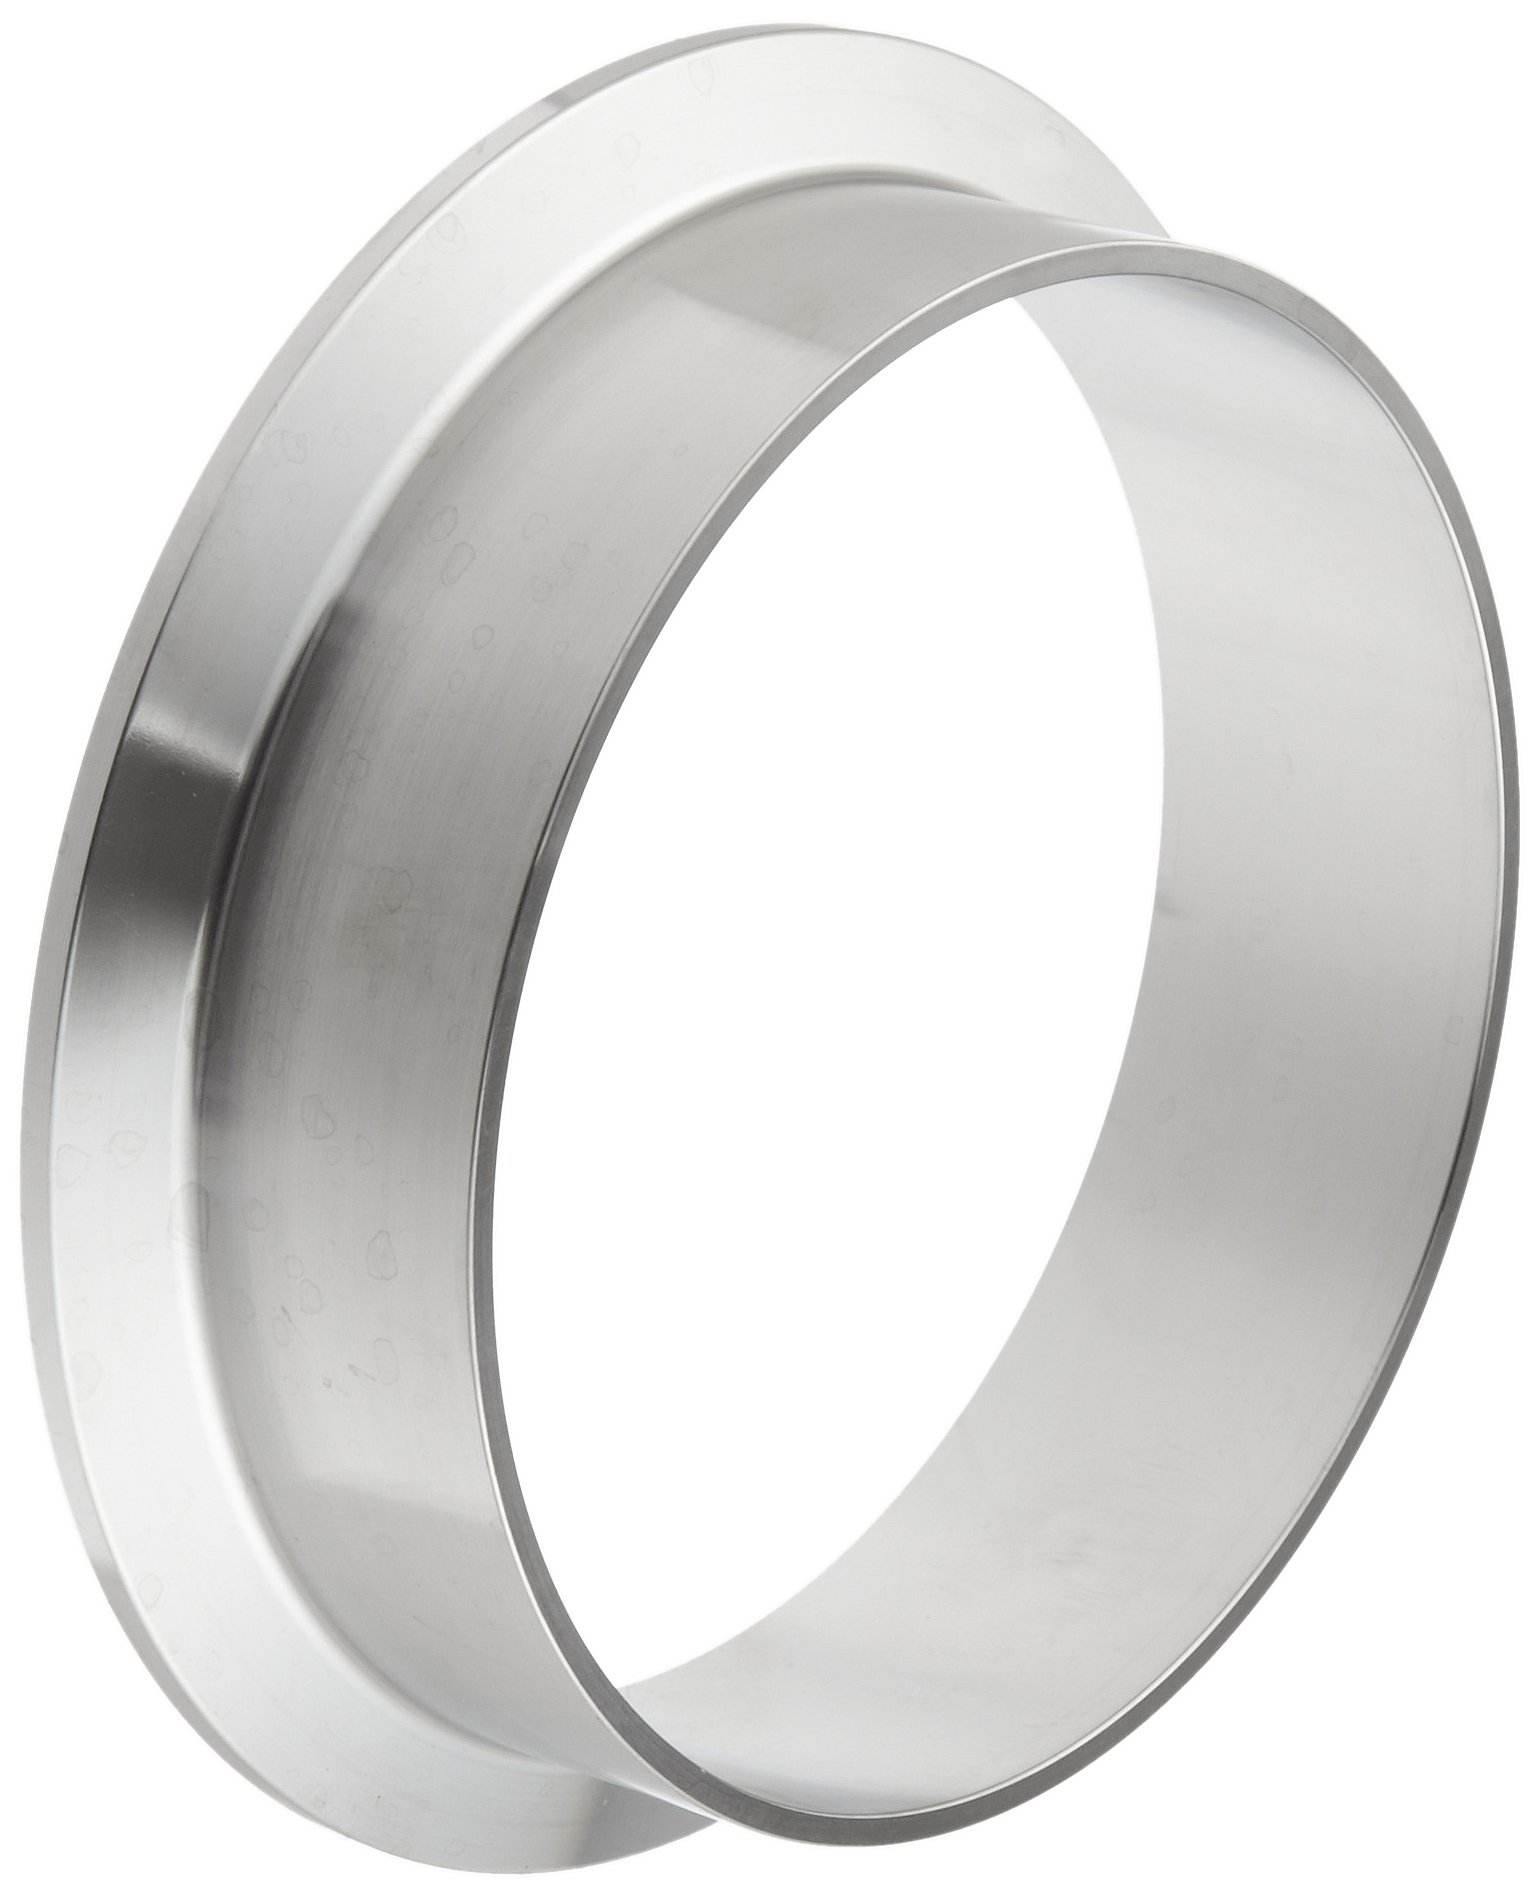 Dixon L14AM7-G400 Stainless Steel 304 Sanitary Fitting, Long Weld Clamp Ferrule, 4'' Tube OD